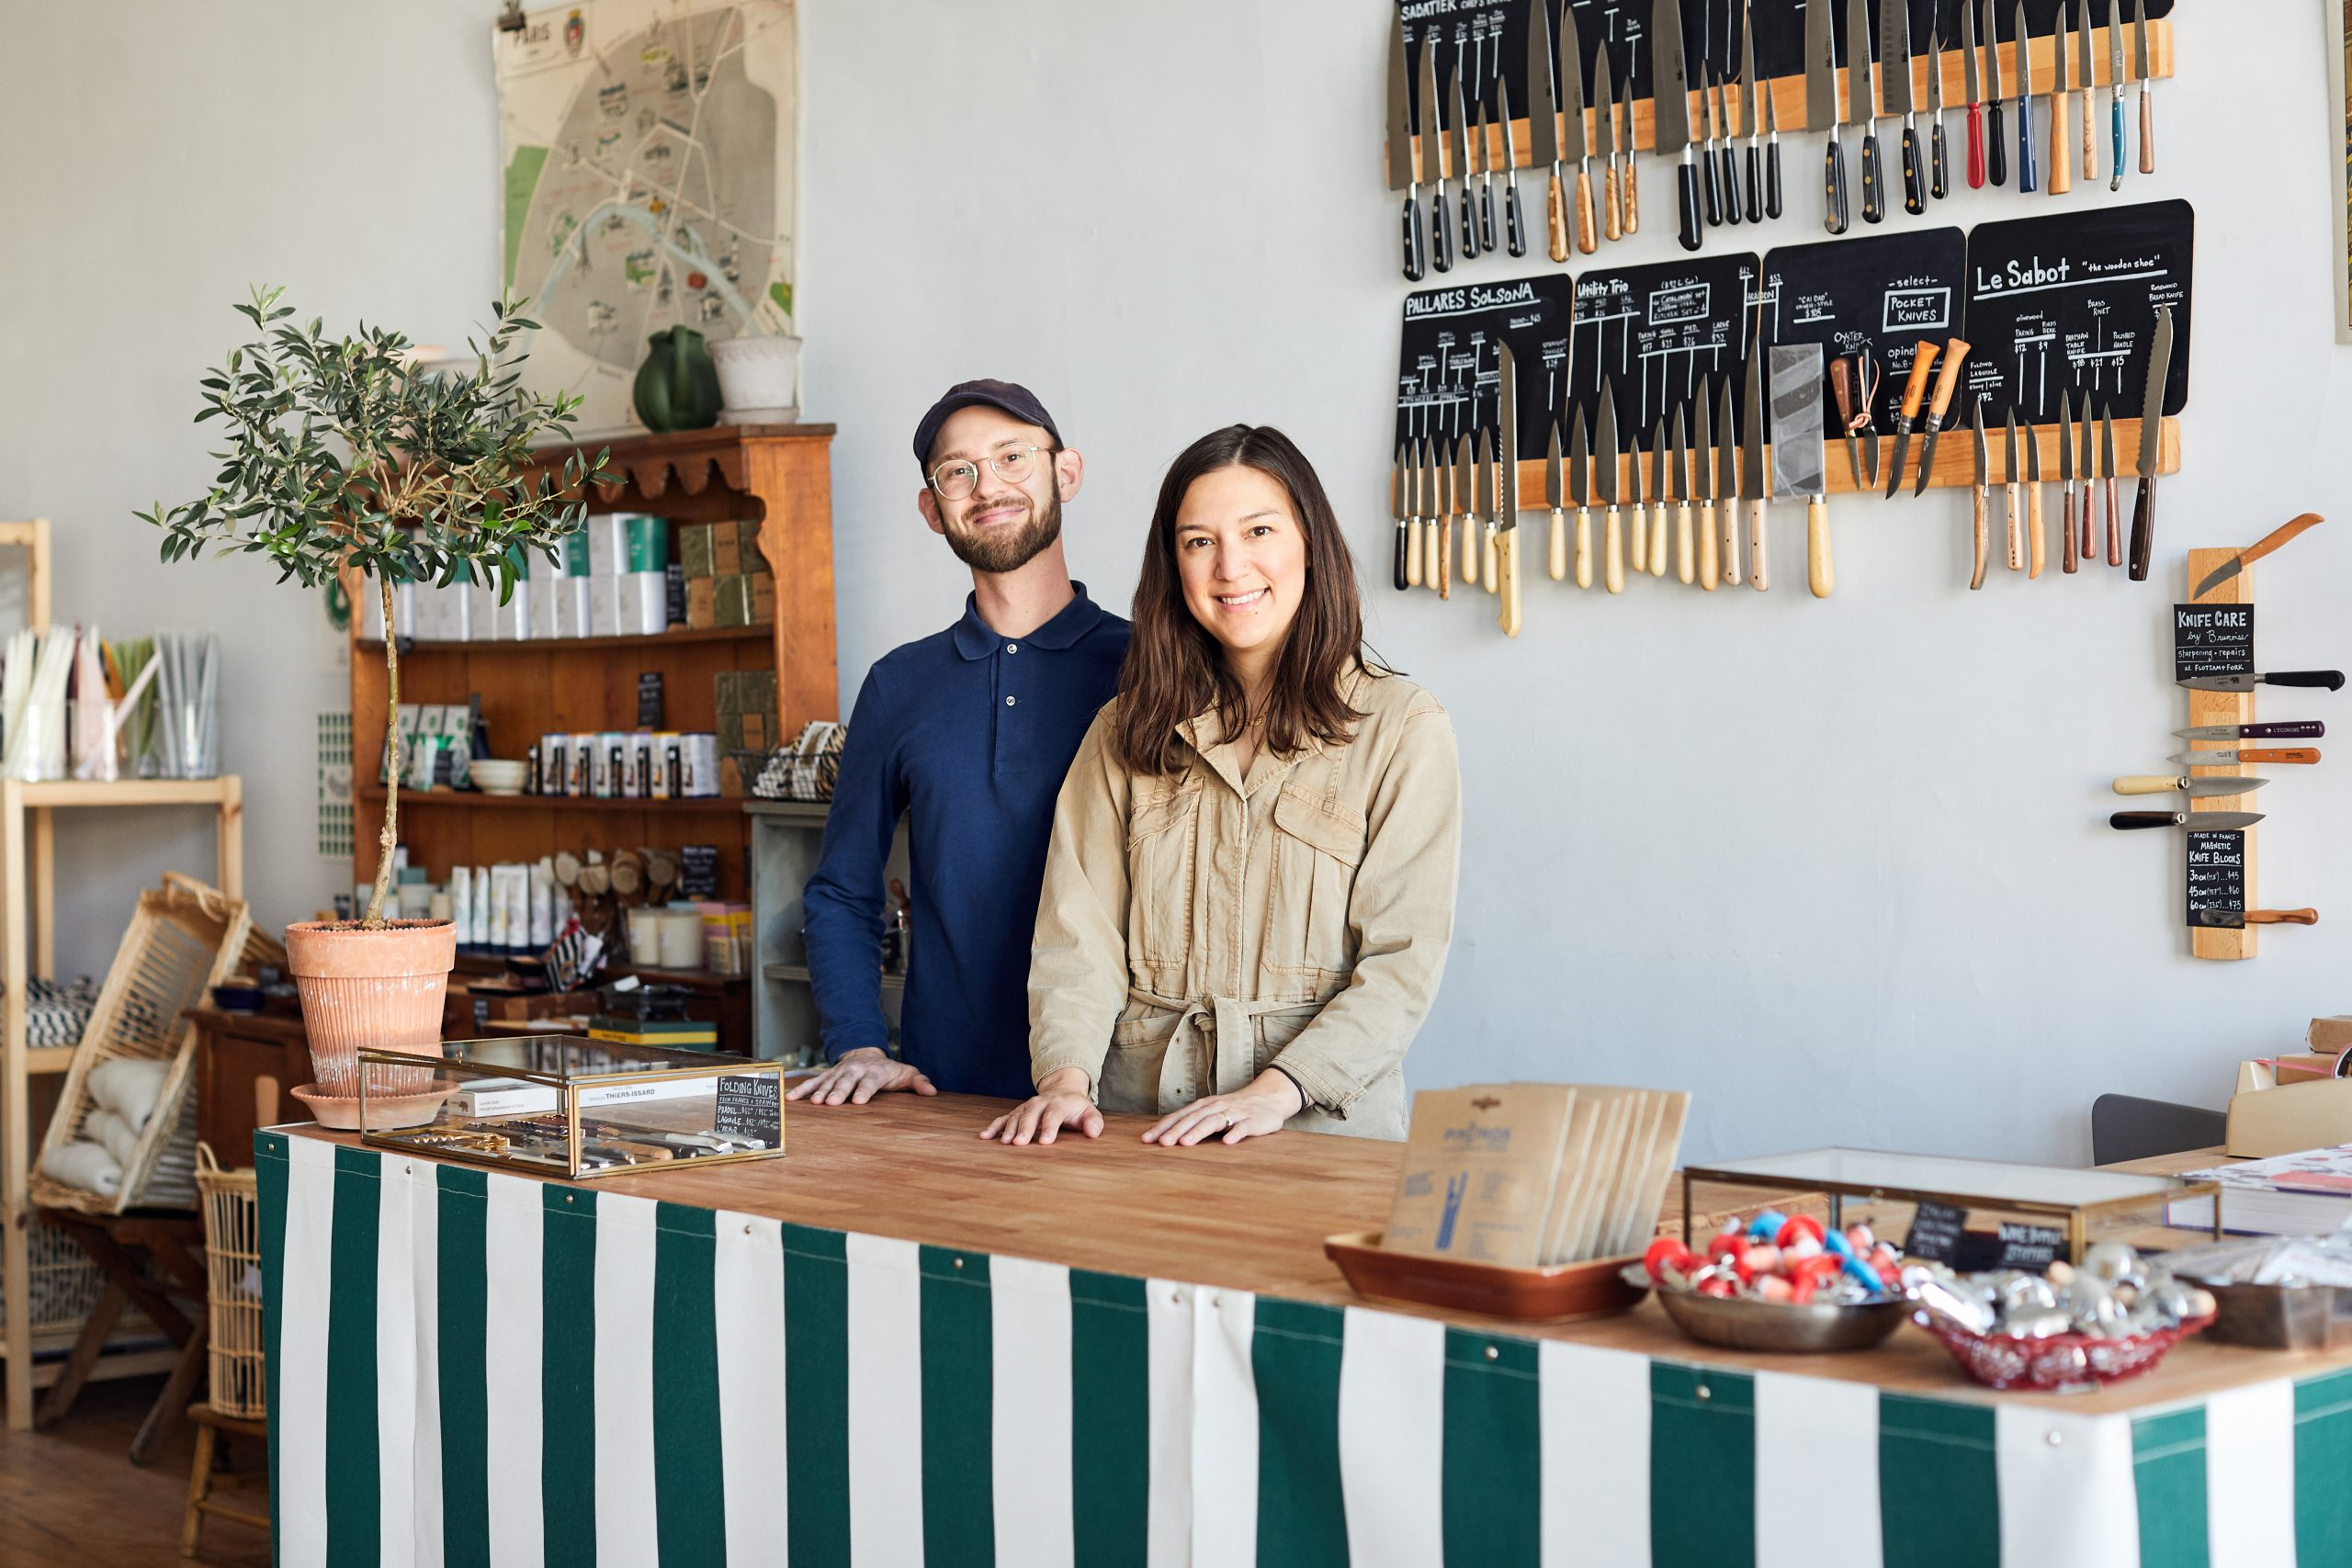 Owners (and husband and wife) Joe Hasler and Adrianna Fie at their store, Flotsam + Fork